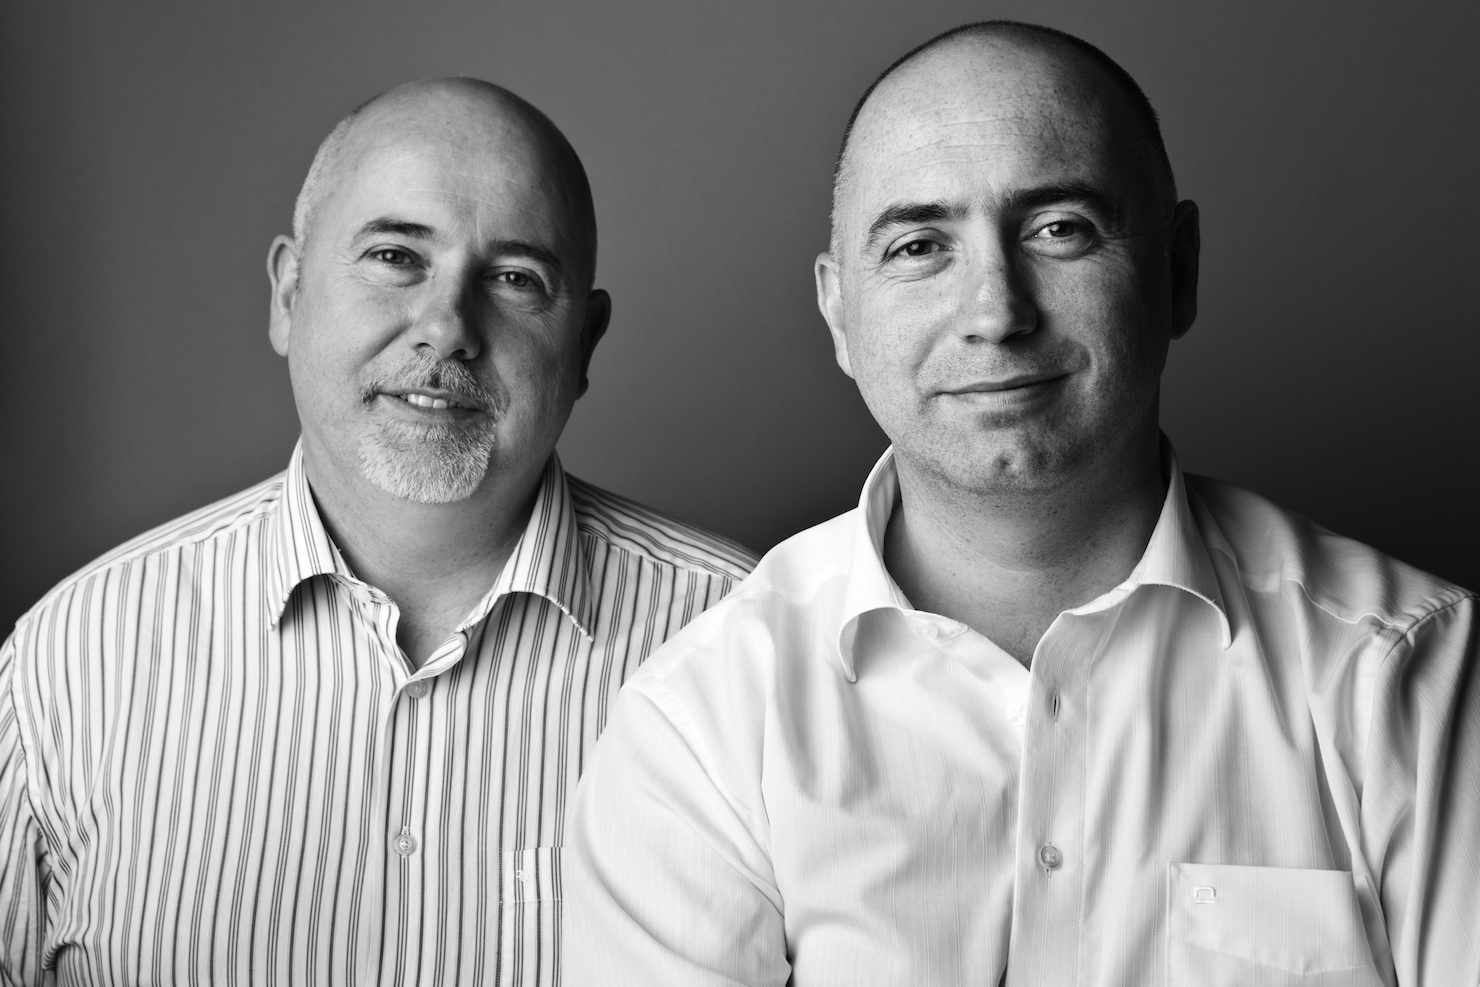 Mcor Technologies co-founders Fintan MacCormack (left) and Conor MacCormack